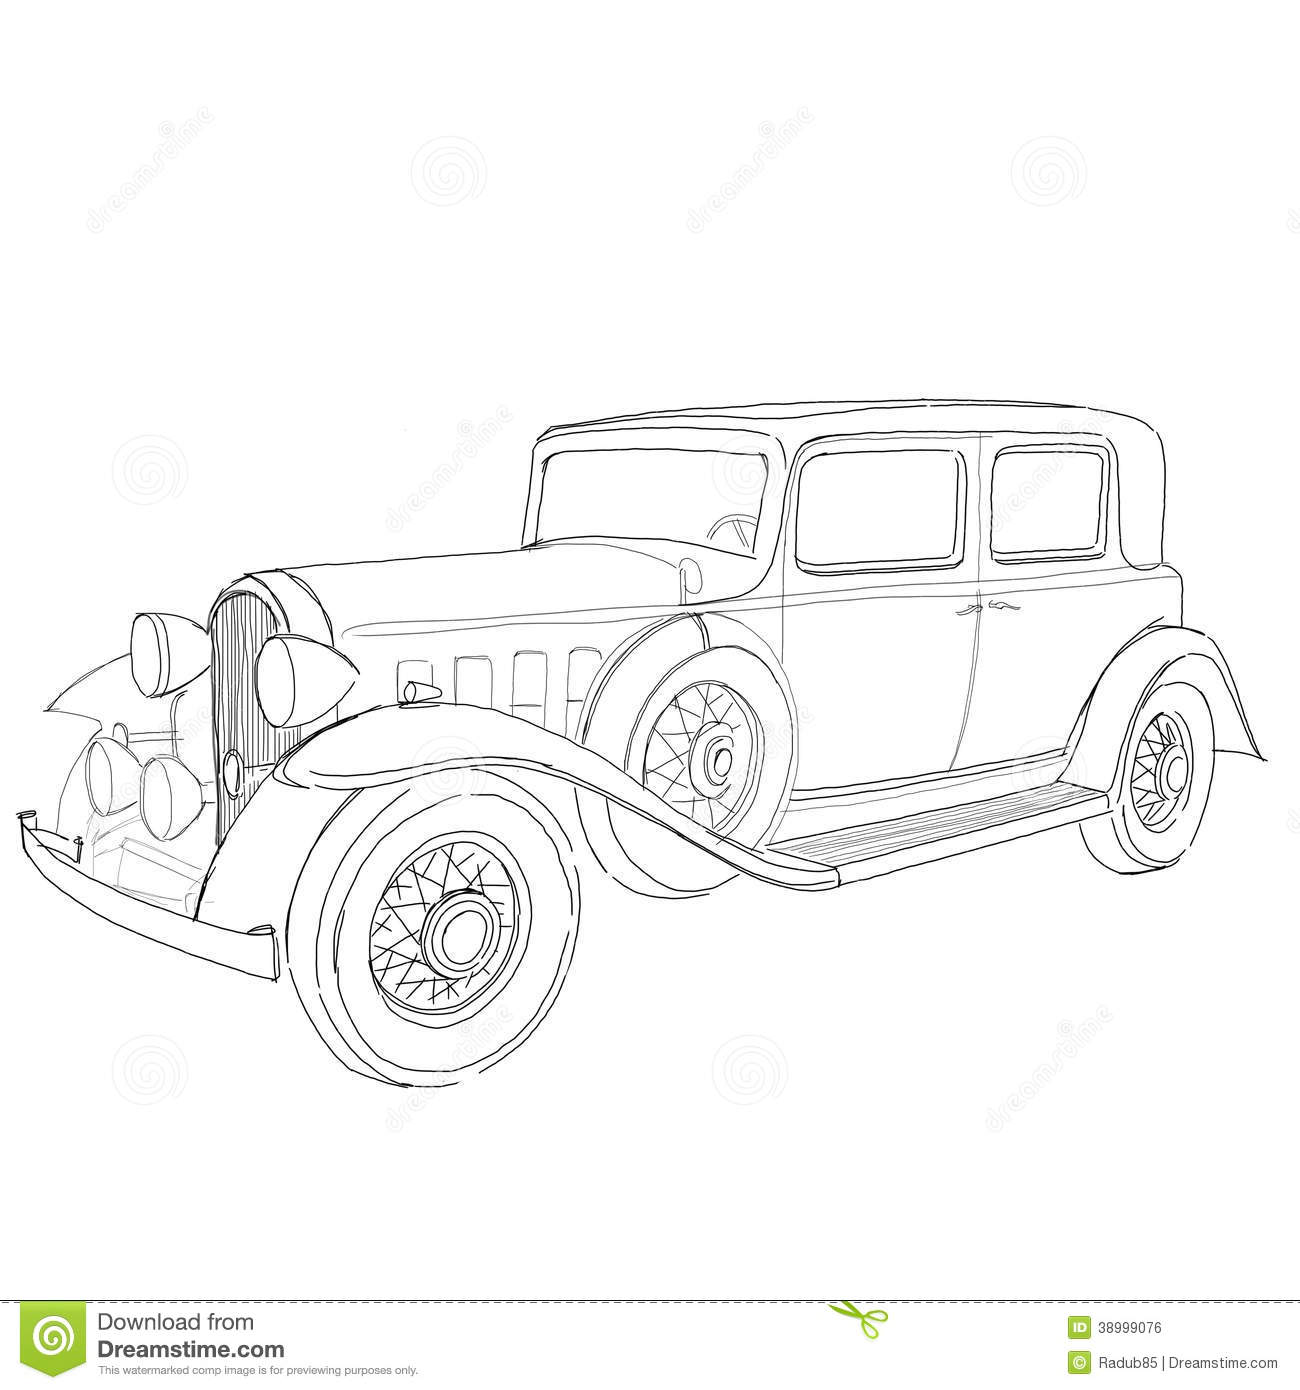 Classic Car Coloring Pages also Victorian Embroidery Patterns furthermore 539306124104193549 further Wildlife Patterns Wood Carving moreover Ceramic Work Black And White Clipart. on antique engine art